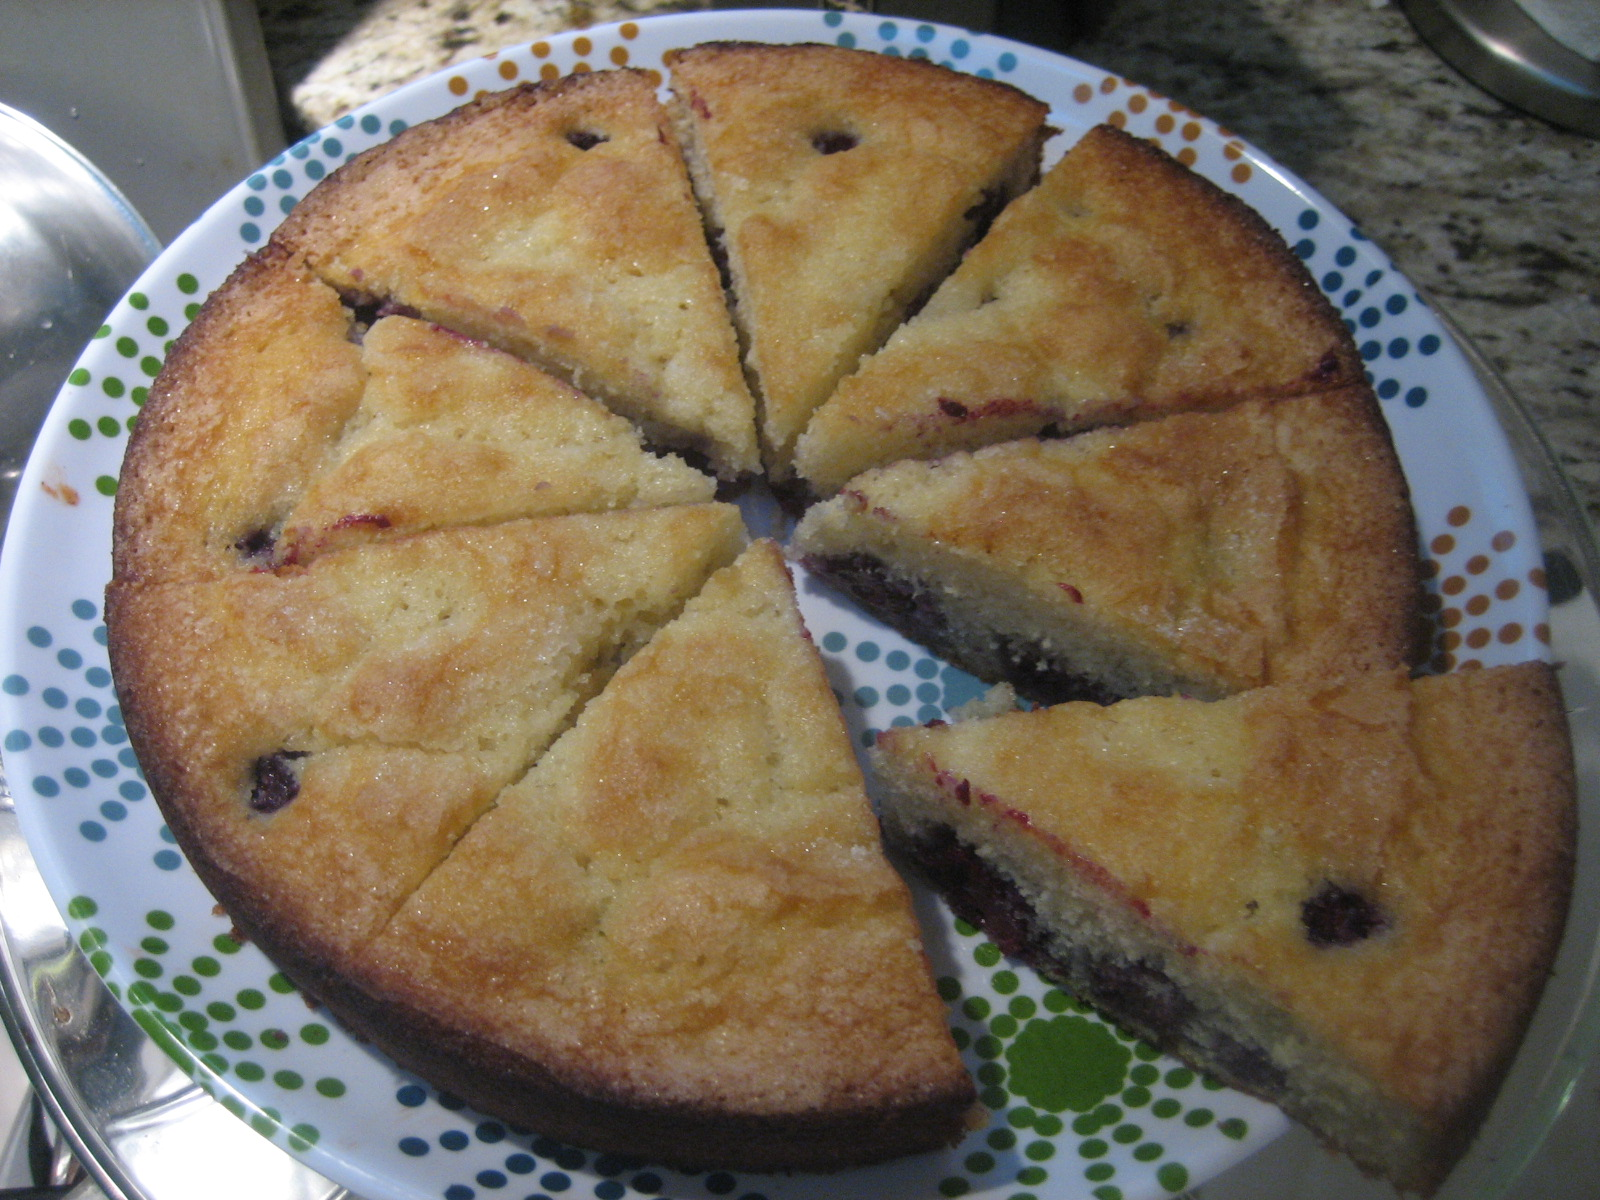 ... buttermilk frangipane cake recipe blackberry buttermilk cake po boy